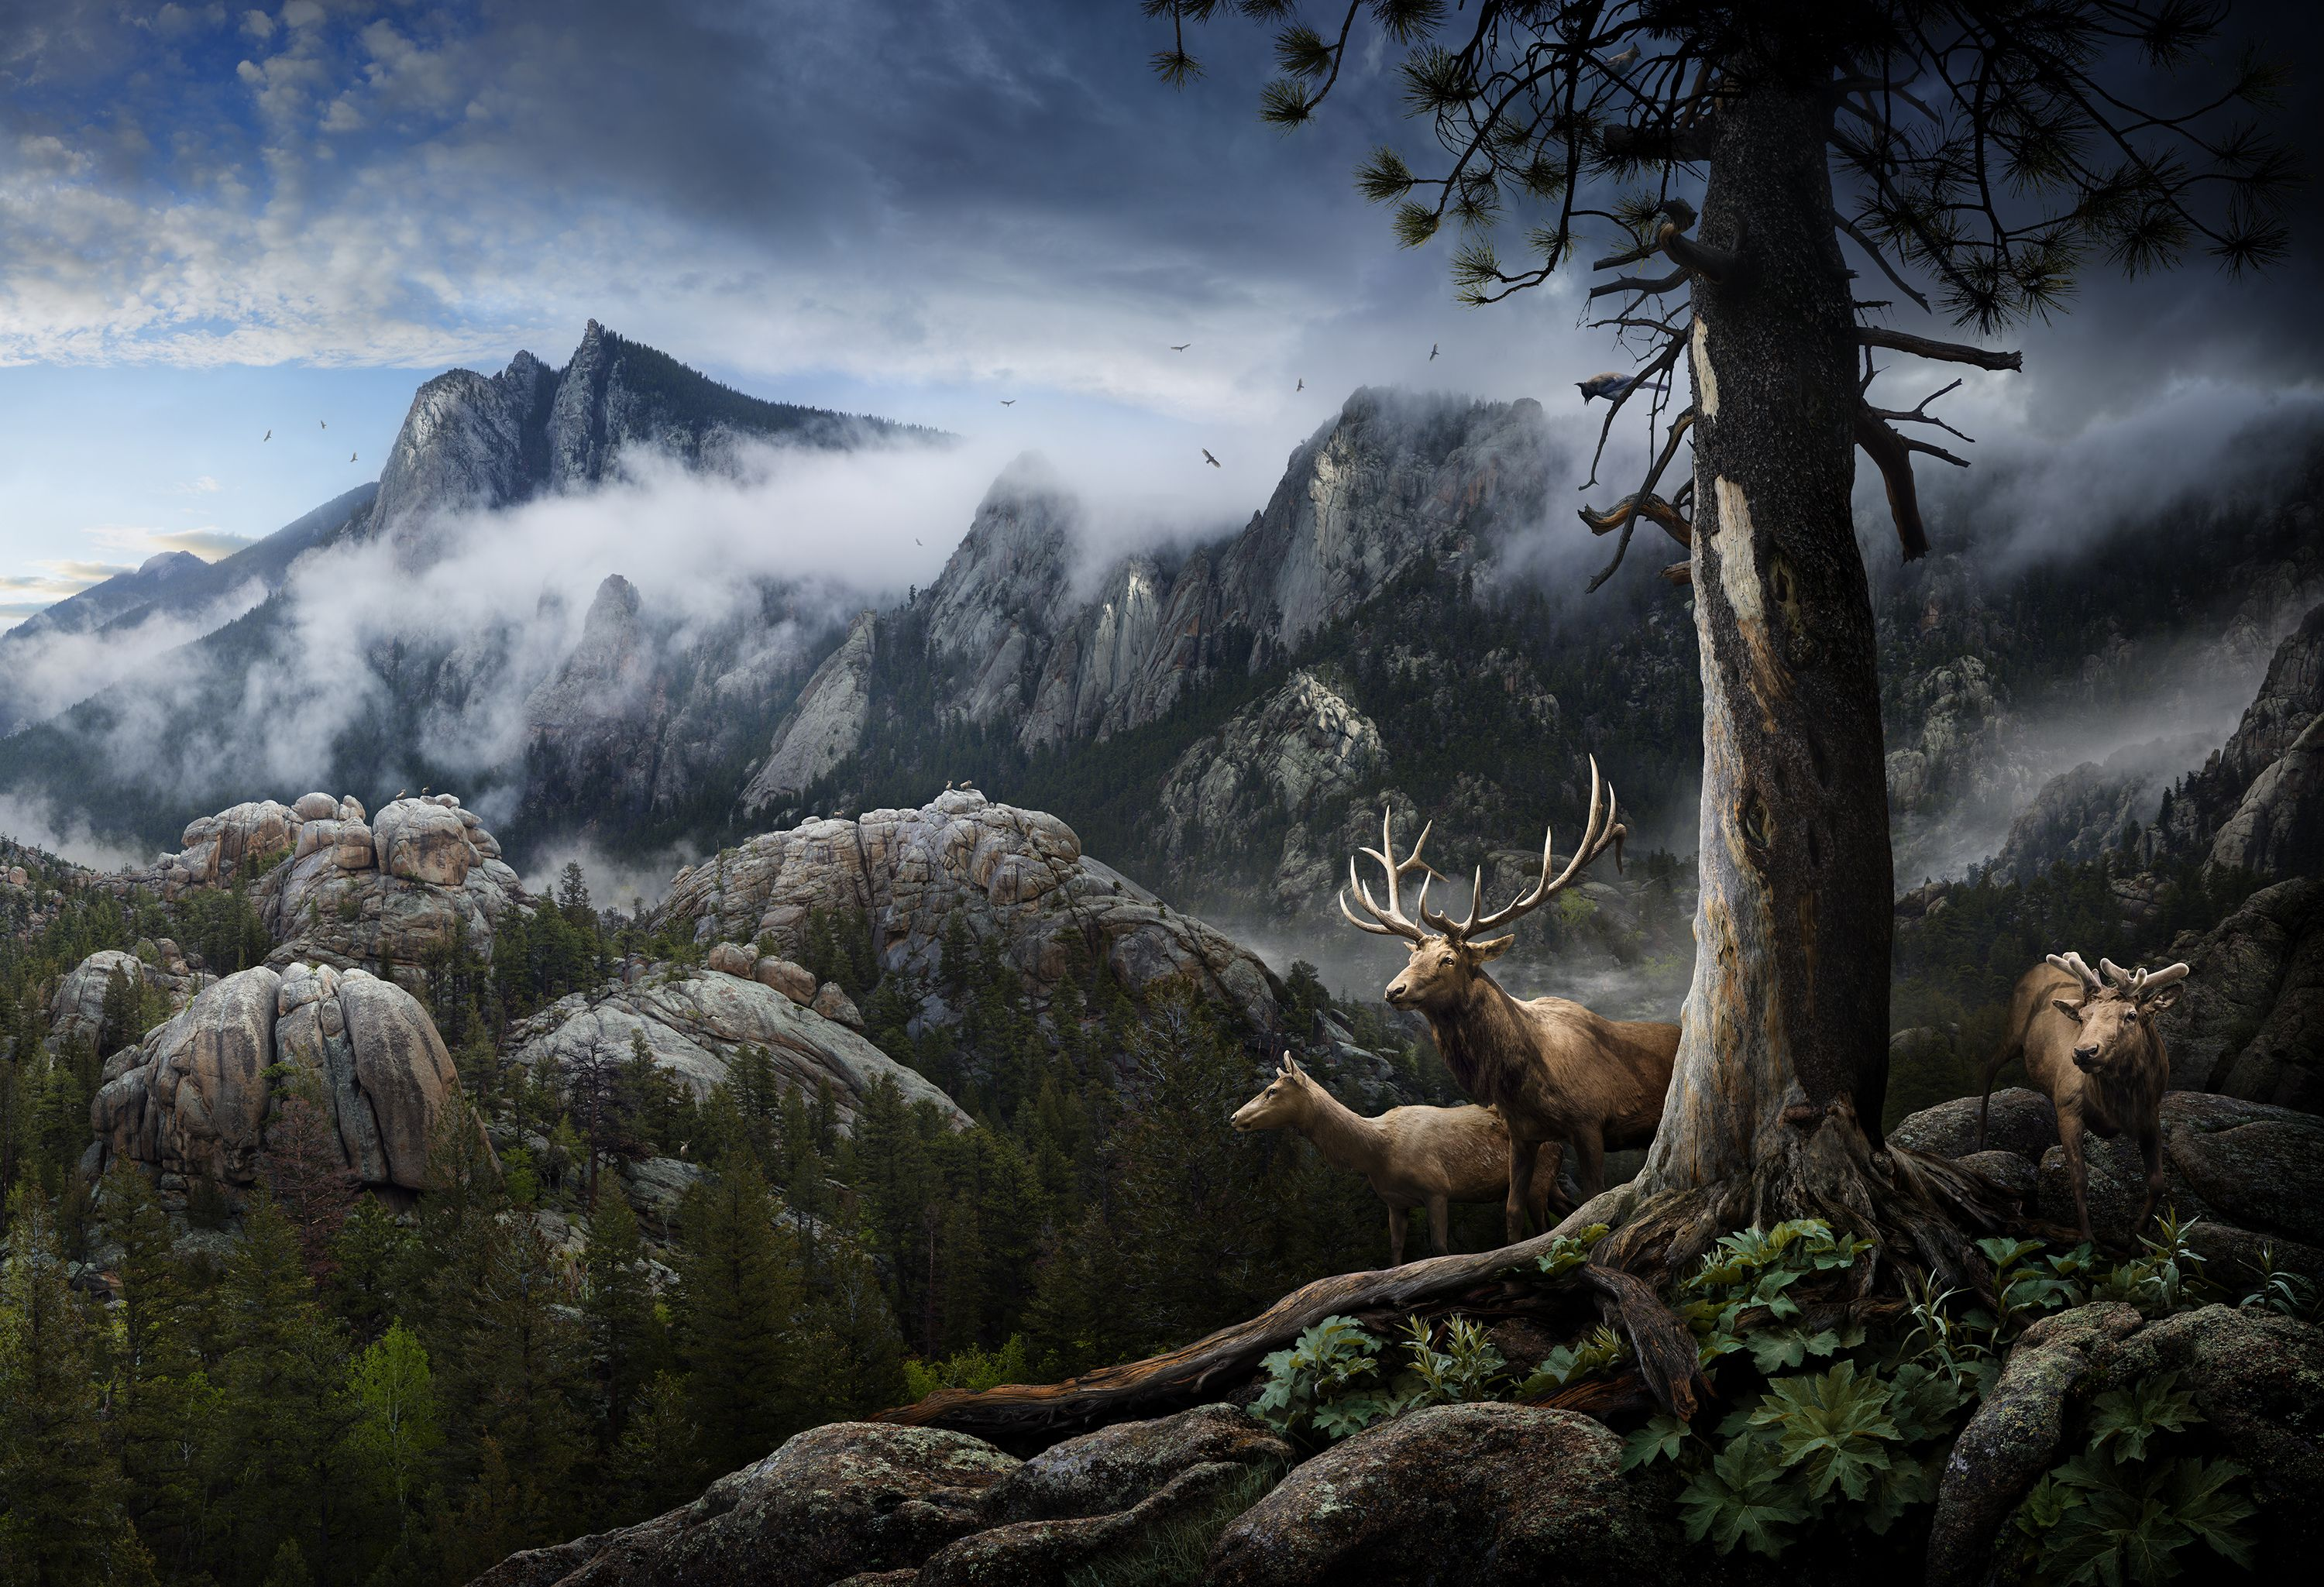 Incredible Photographs Between Idealization And Realism By Nick Pedersen Panoramic Images Scenery Rocky Mountain National Park